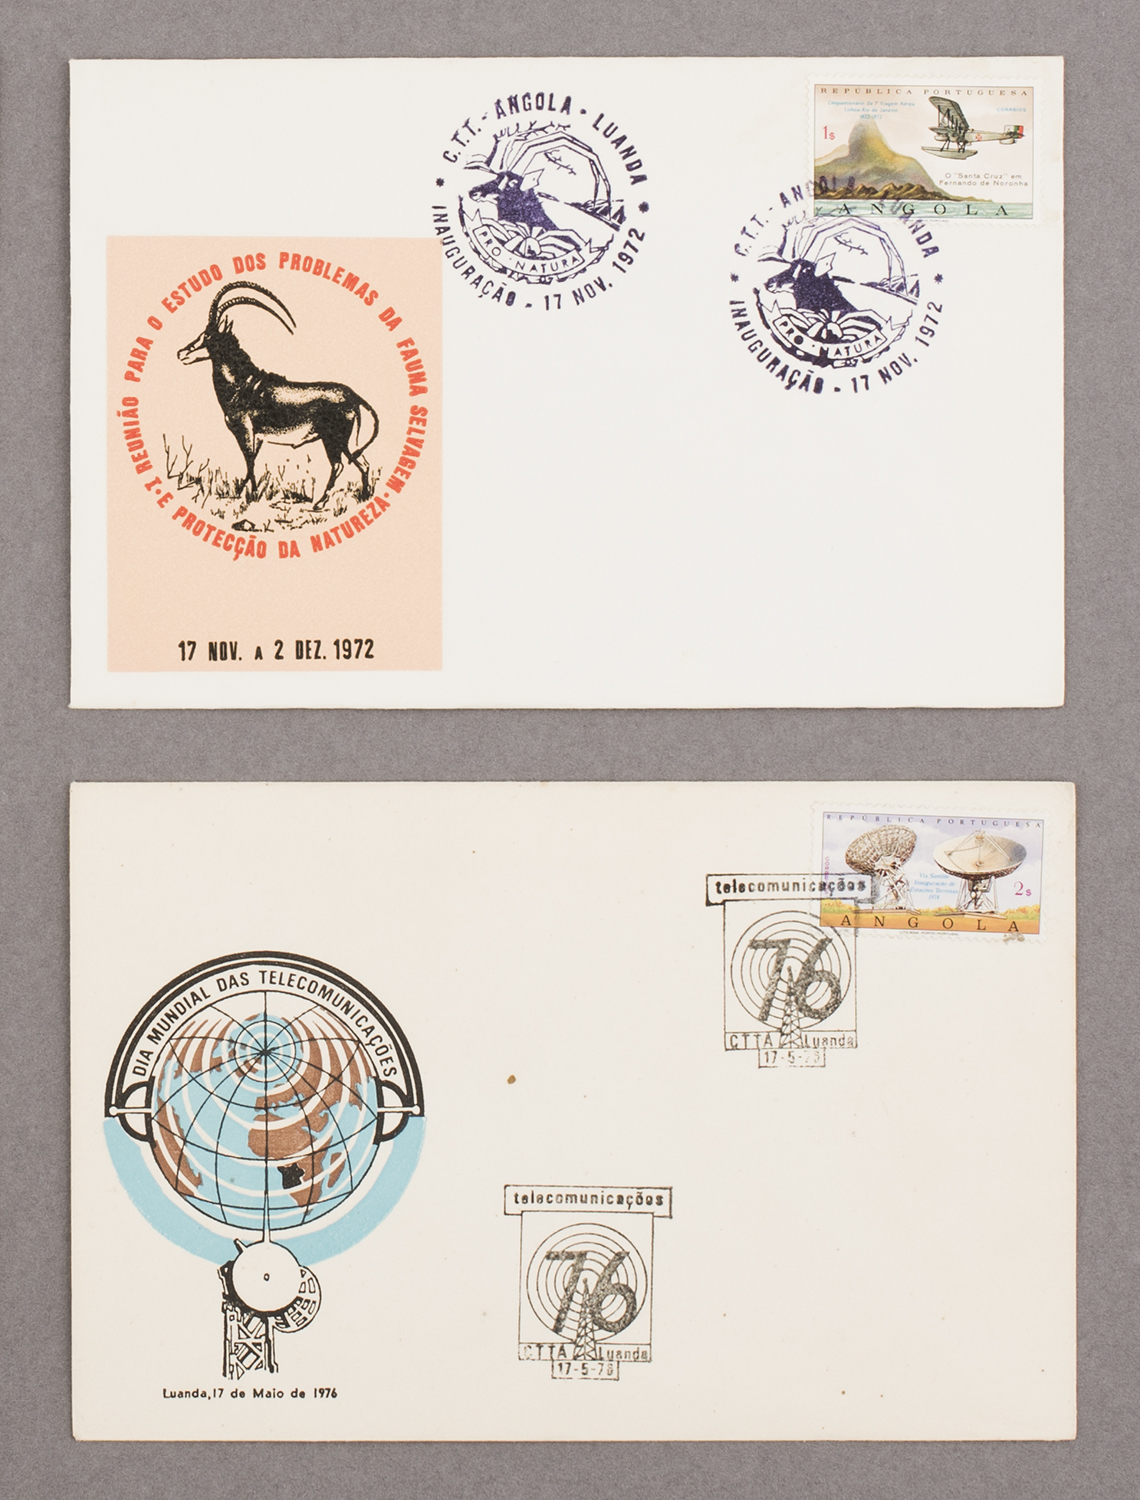 First day covers from Angola, 1972 & 1976,from Feira de Ladra, Lisbon